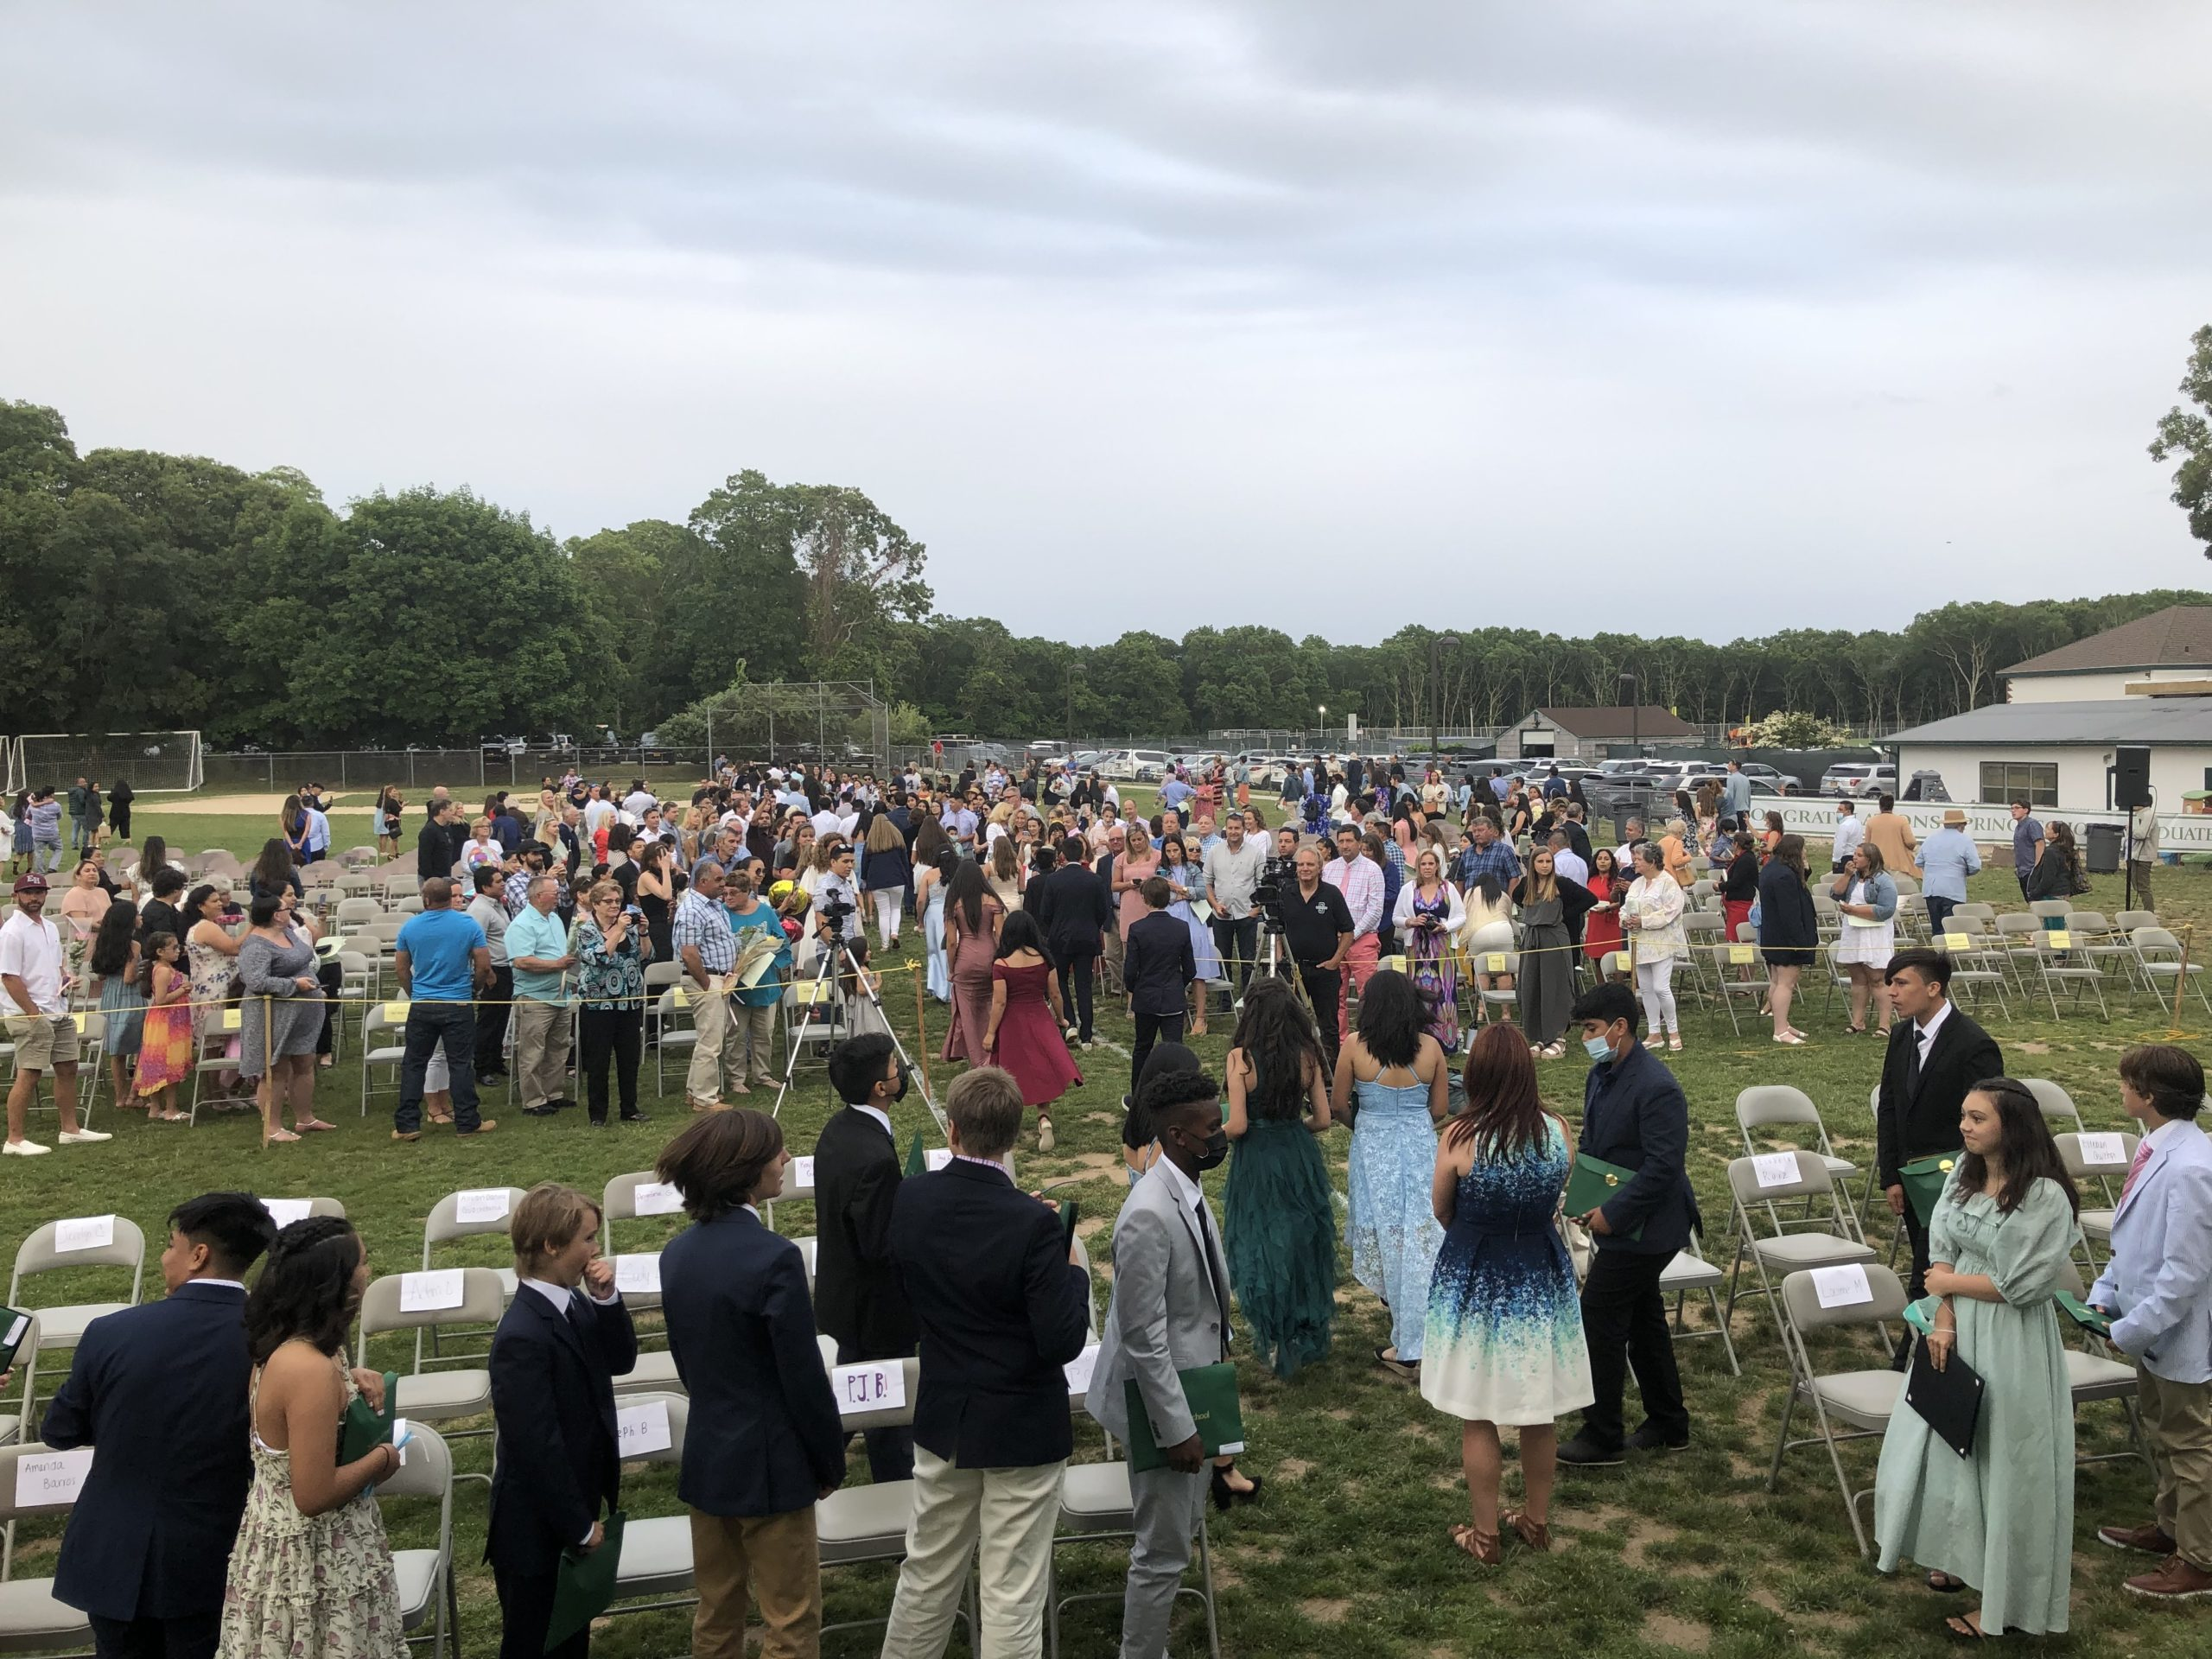 Students file out of eighth grade graduation on Saturday, June 26. The eighth grade were treated to a graduation ceremony on school grounds as well as an evening banquet.